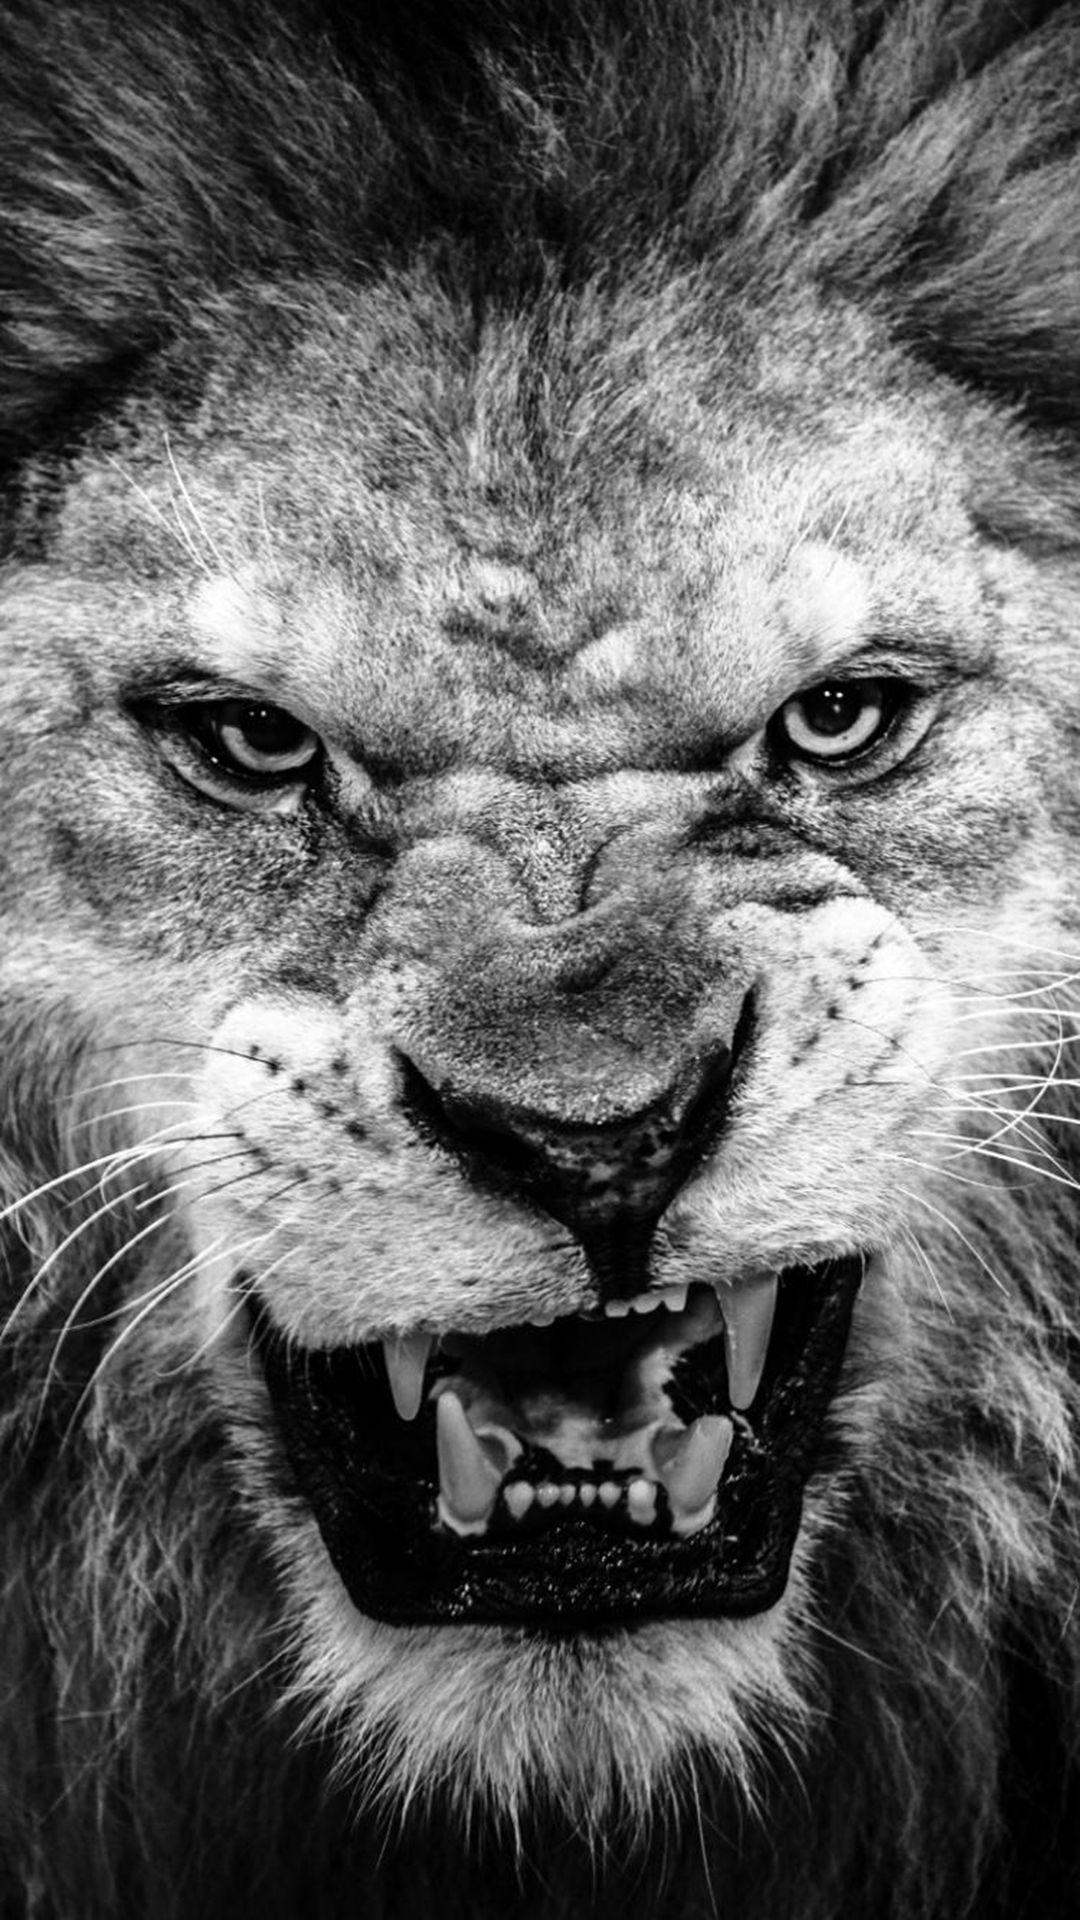 Lion wallpaper for iPhone users . | Wallpapers | Pinterest ...